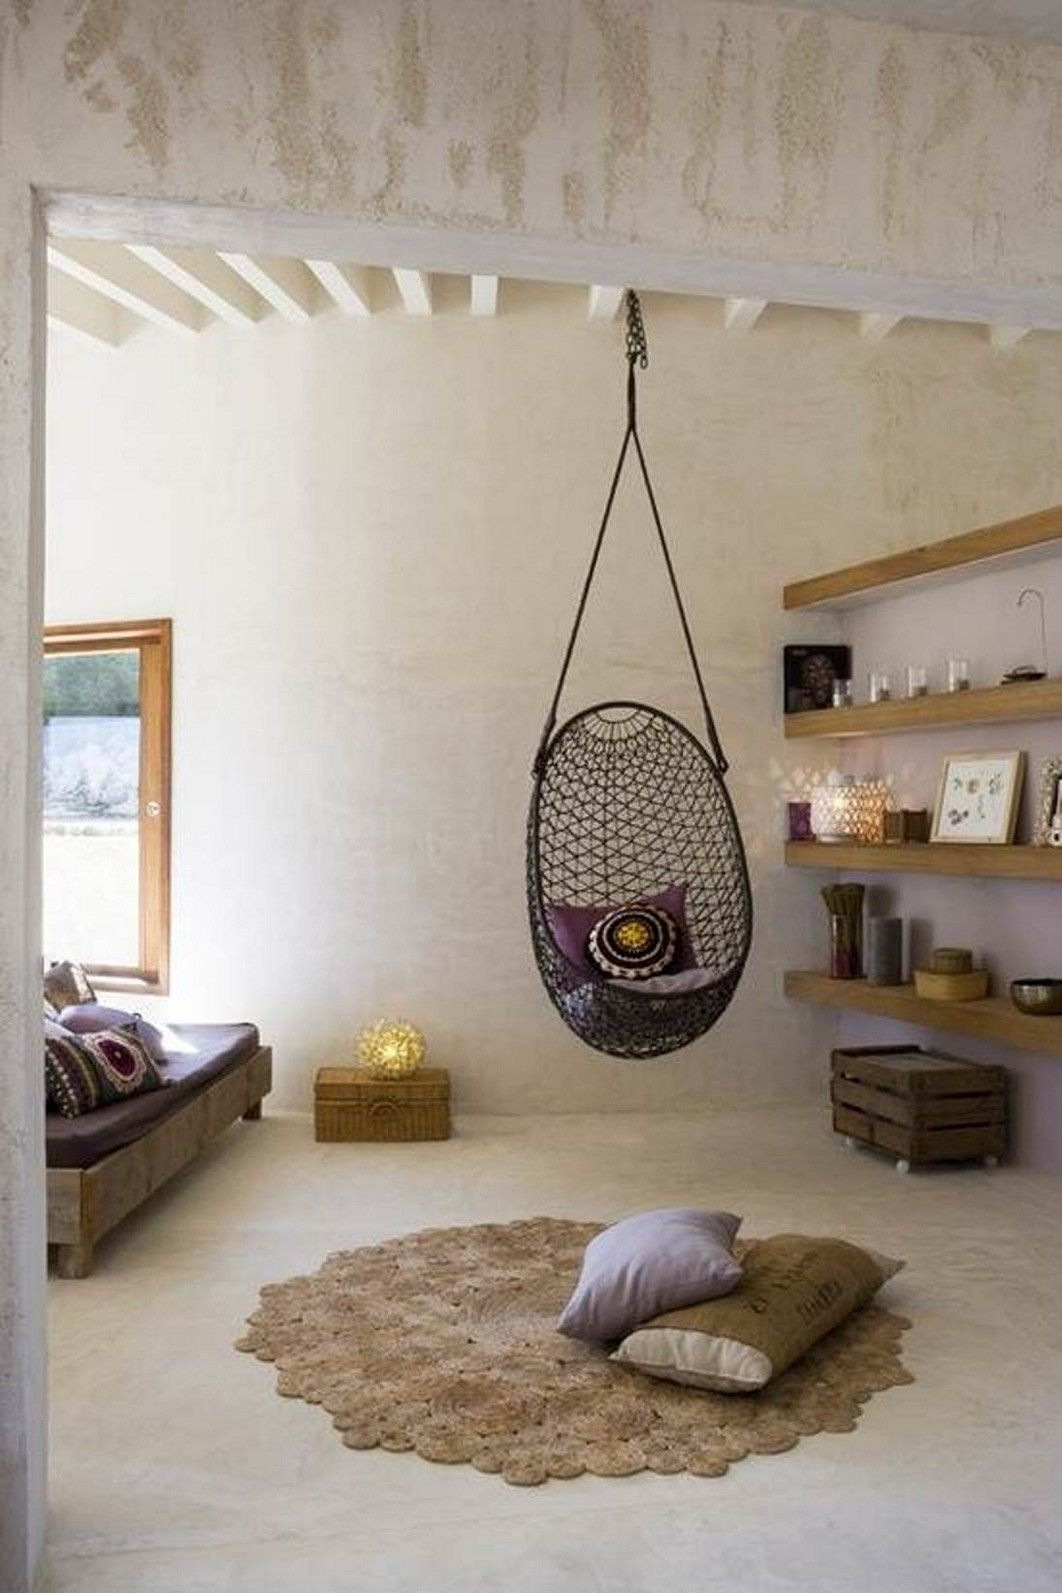 14 Awesome Indoor Hammock Ideas For A Lazy Sunday Morning Bedroom Two Person Hanging Chair Swing Chair For Bedroom Bedroom Hanging Chair Indoor Hanging Chair